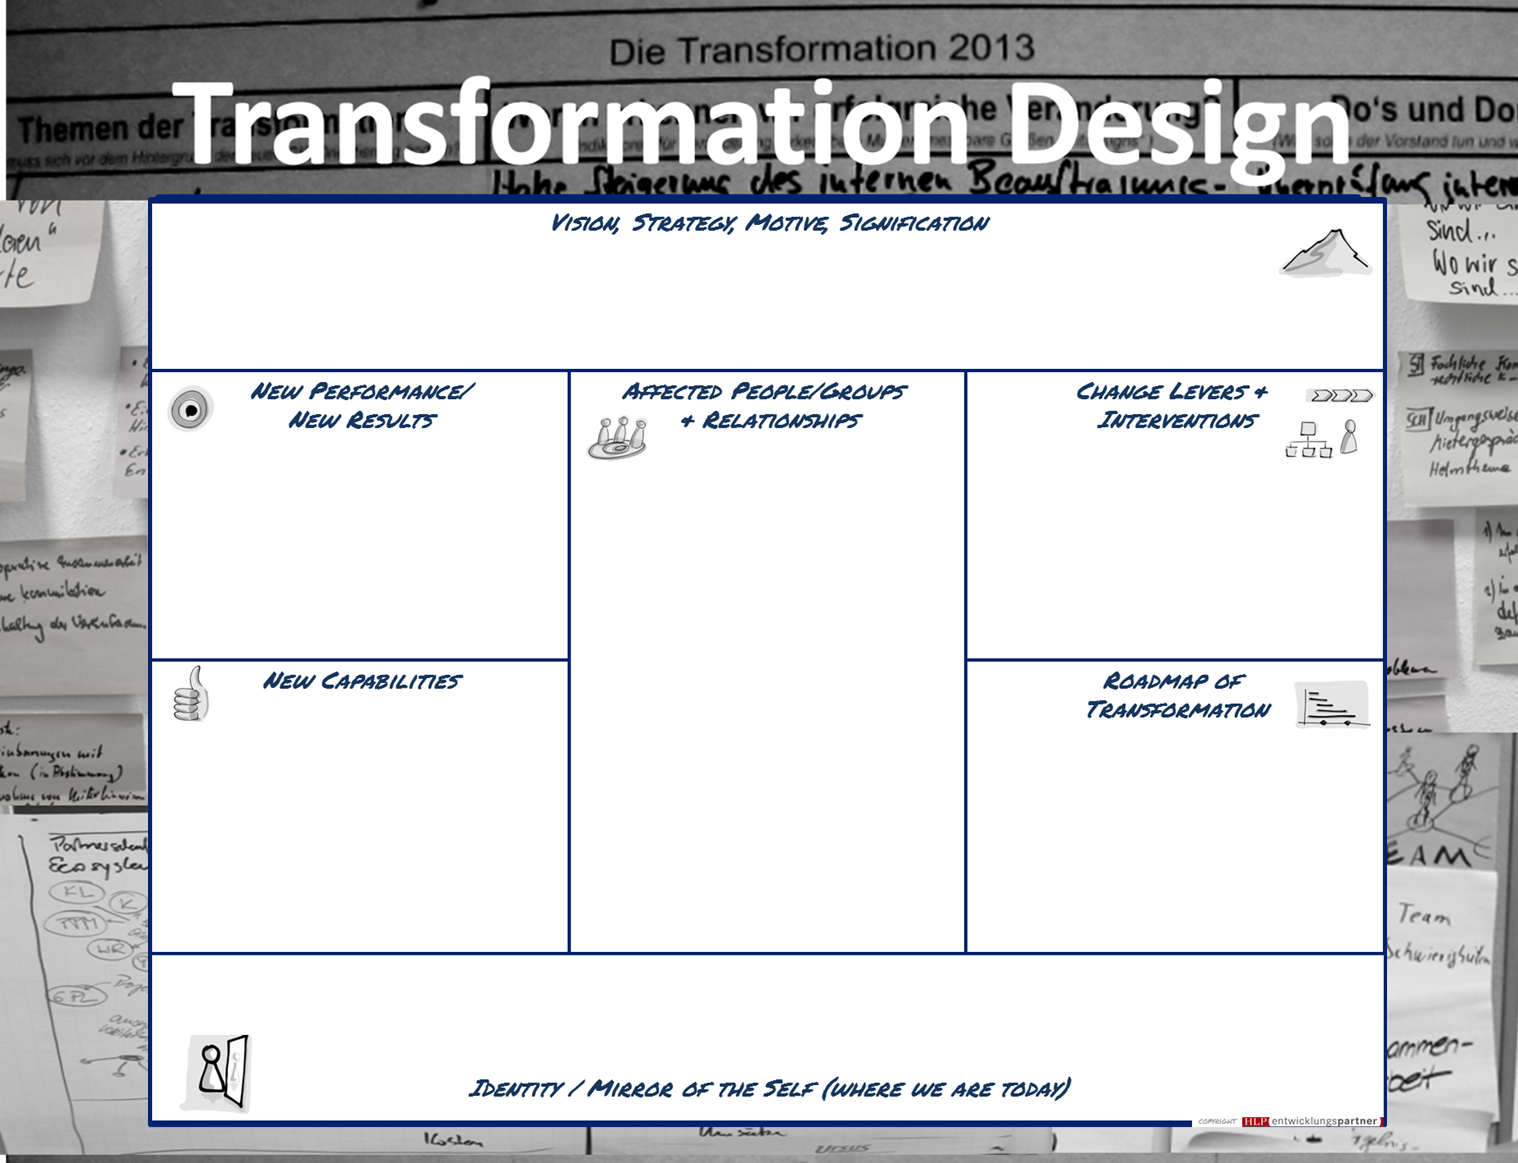 Building Capability With Transformation Design An Interview With Clemens Frowein Business Model Canvas Change Management Business Design